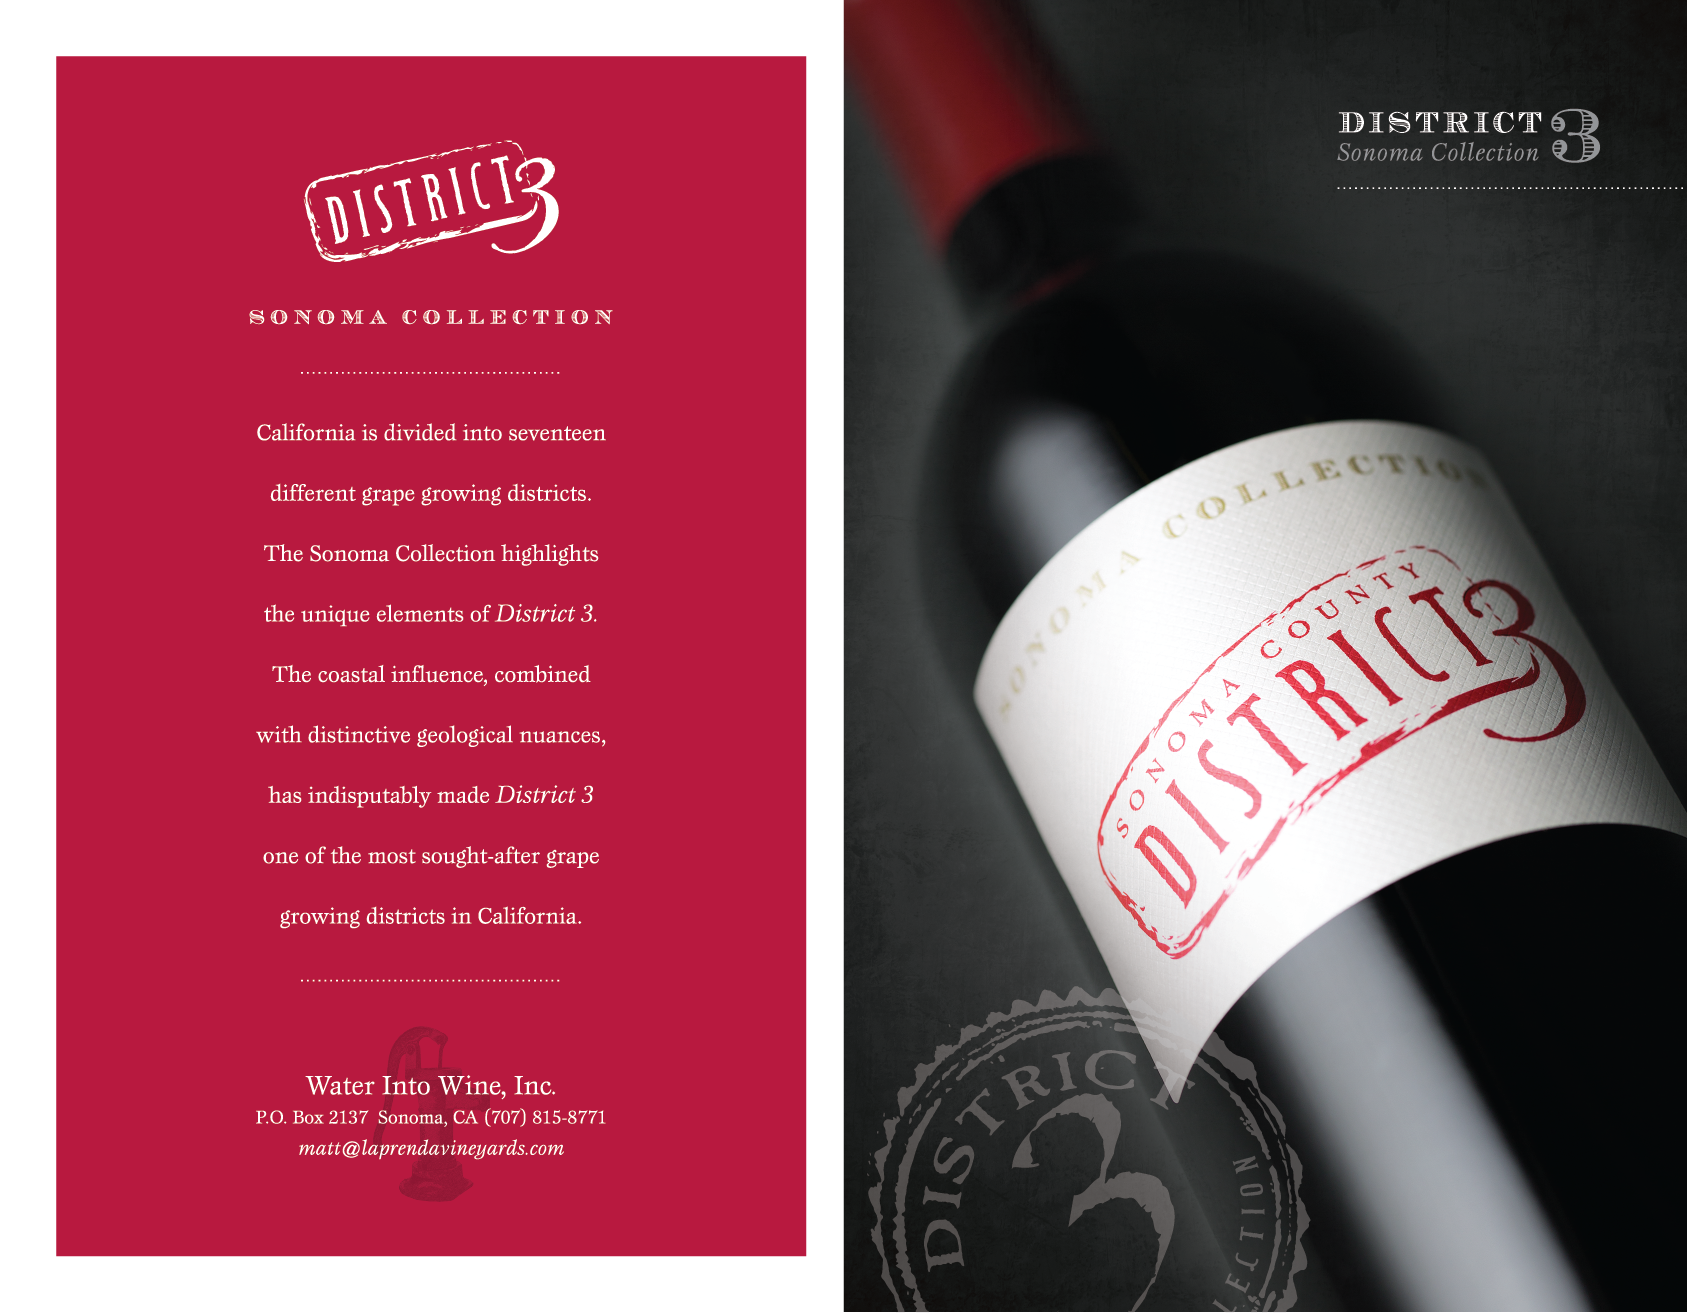 SS_District3_2013_RedBlend_o-02.png